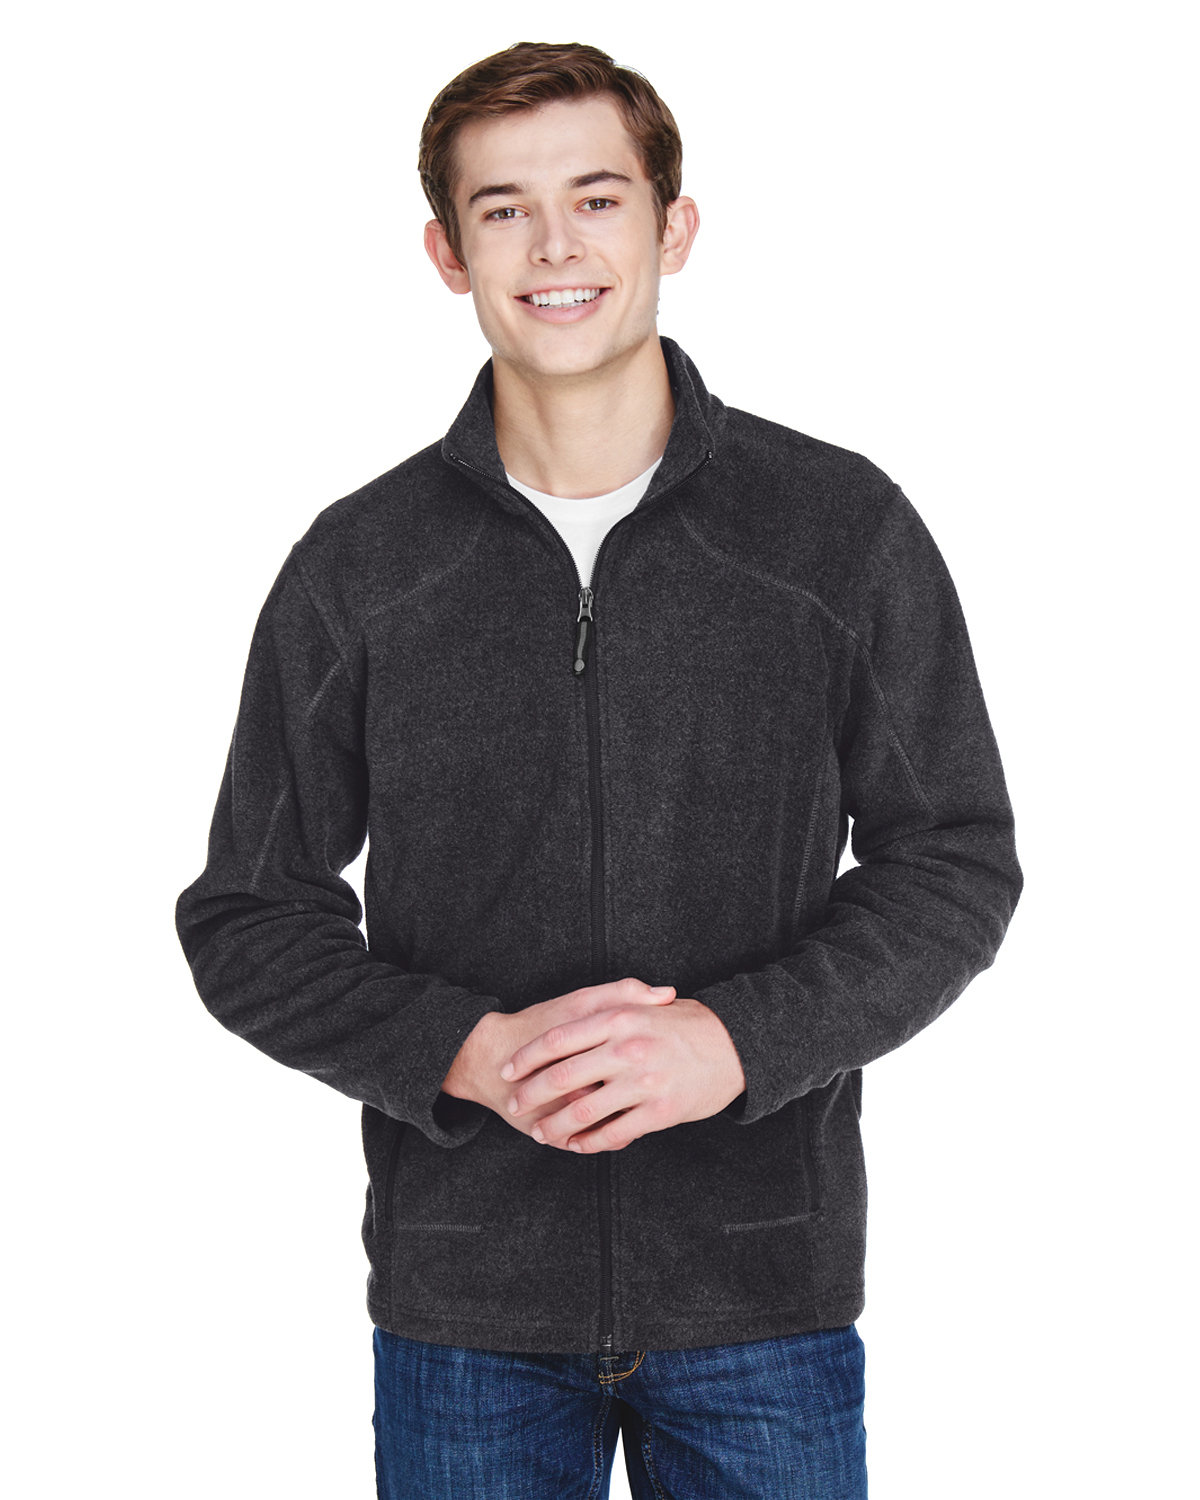 North End Men's Tall Voyage Fleece Jacket HEATHER CHARCOAL